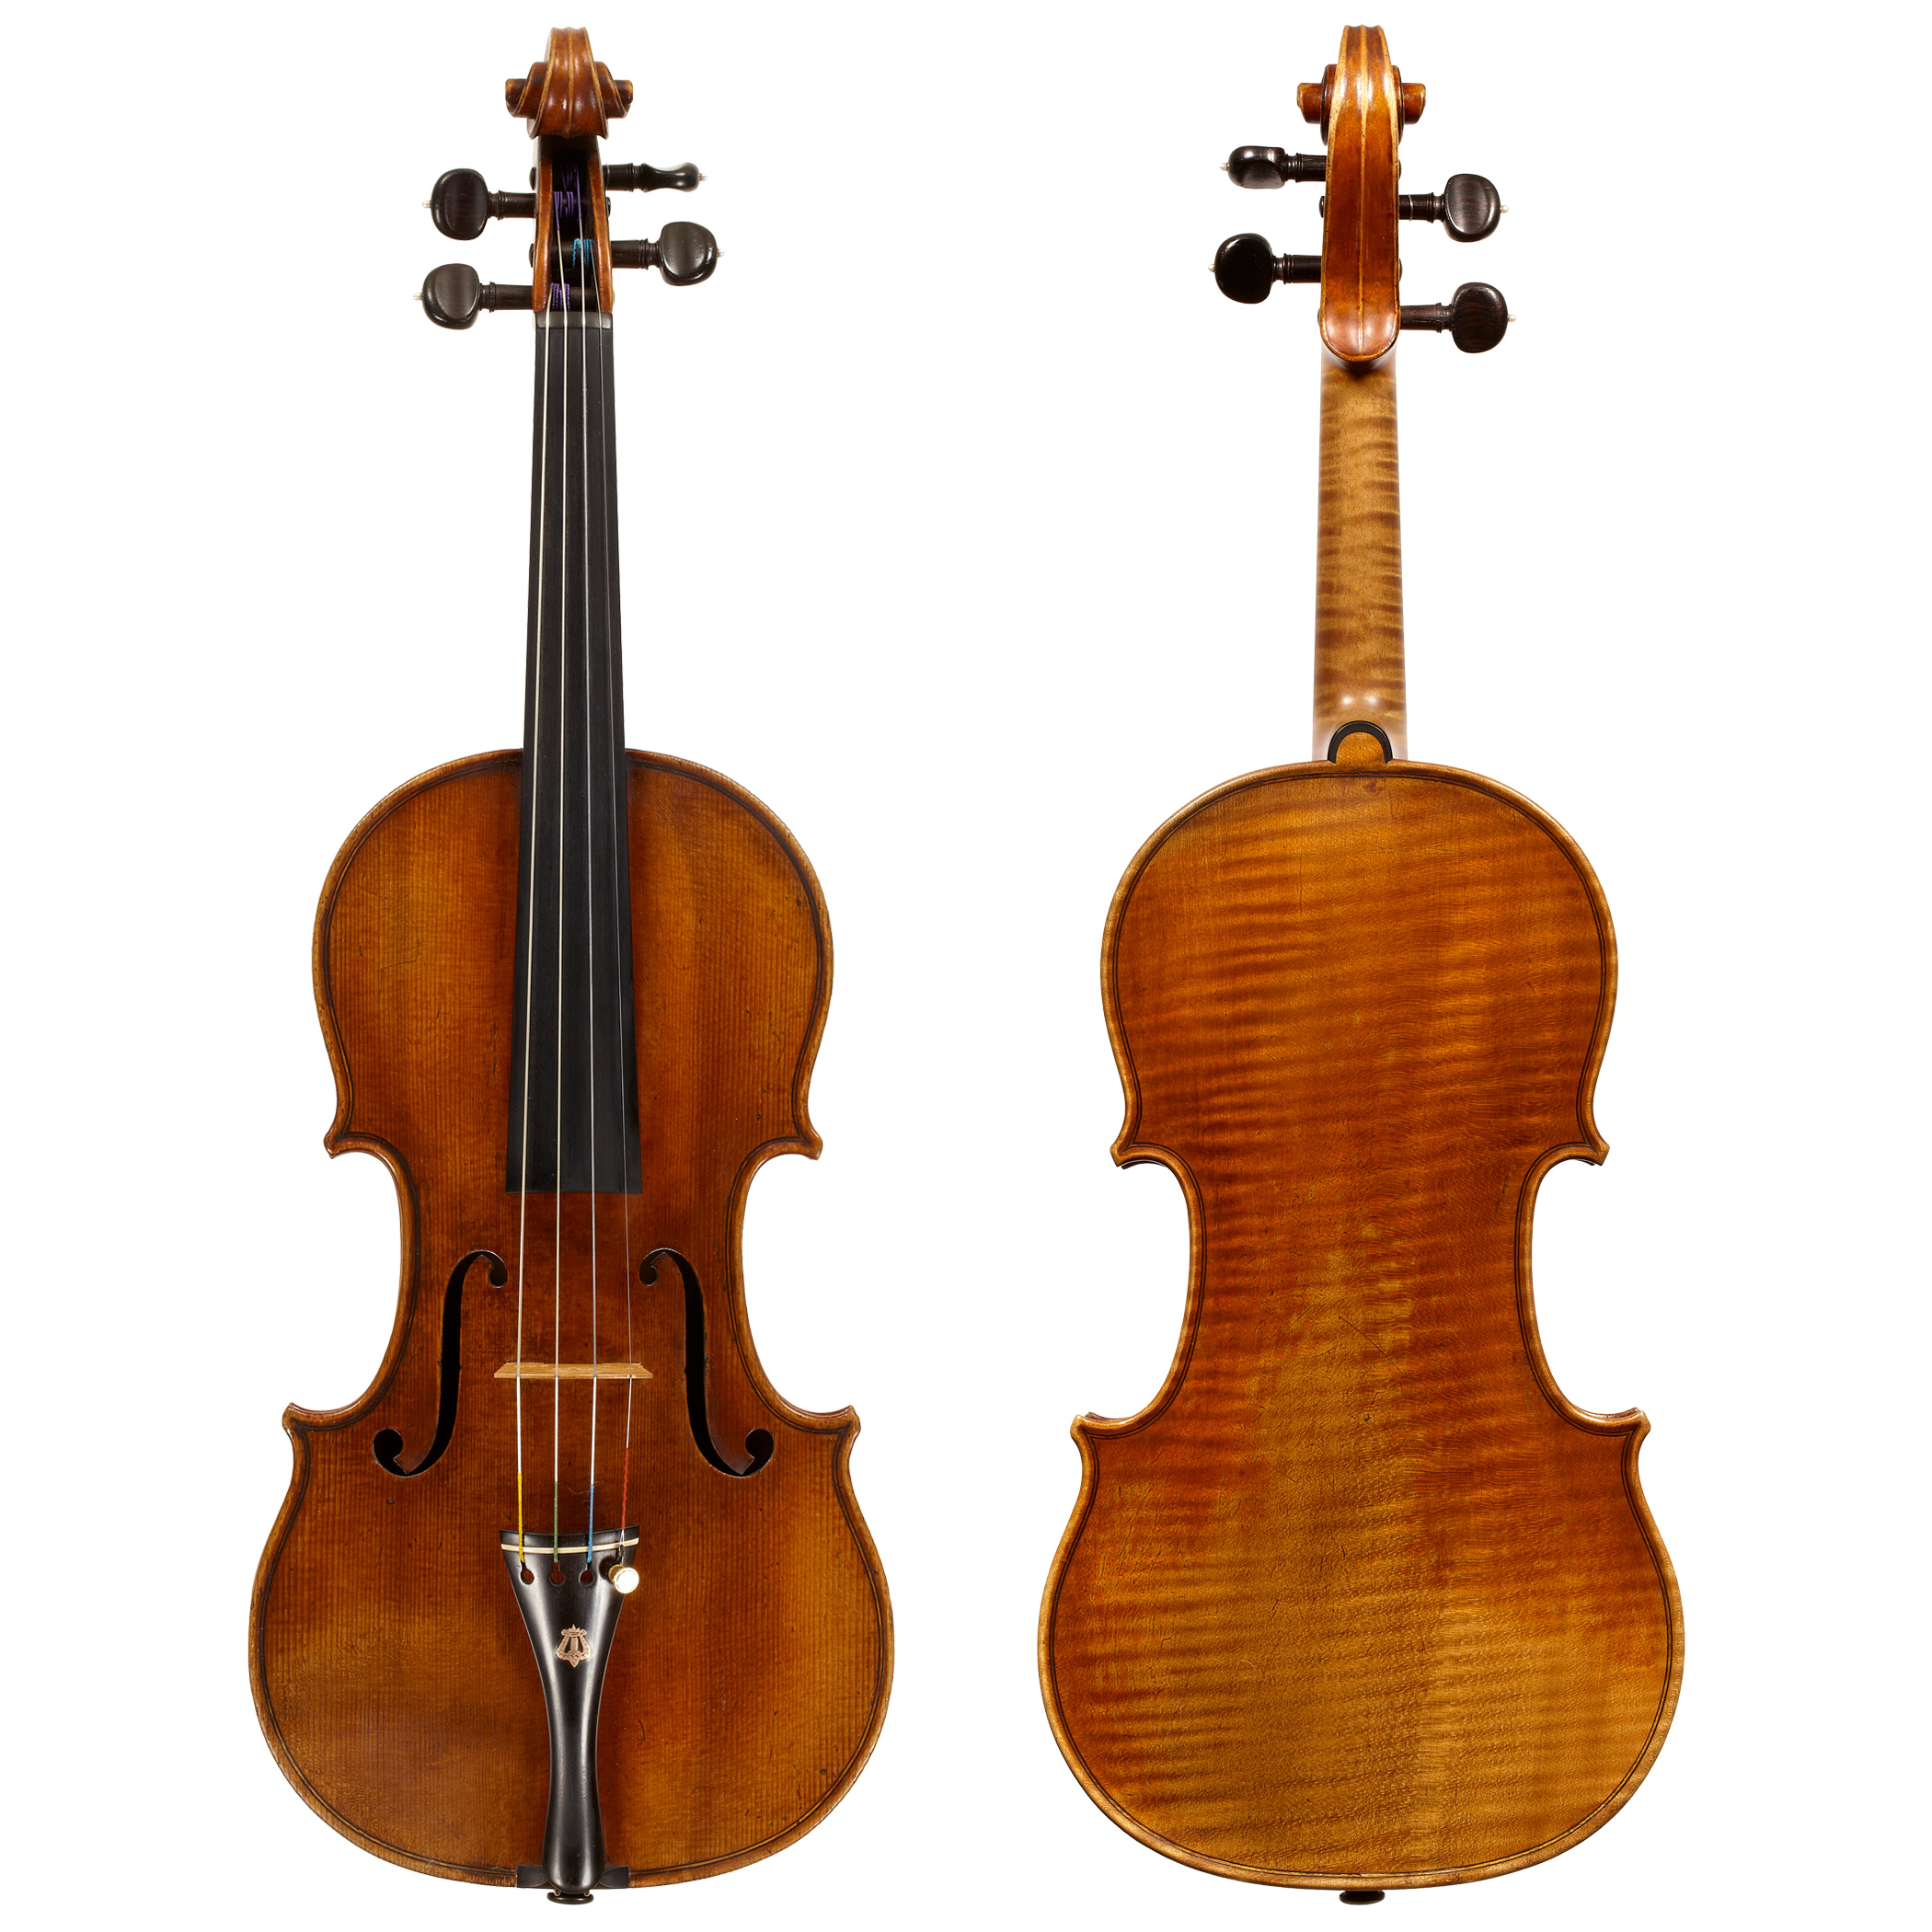 World's most expensive violins #1 The Messiah Stradivarius - $20 million